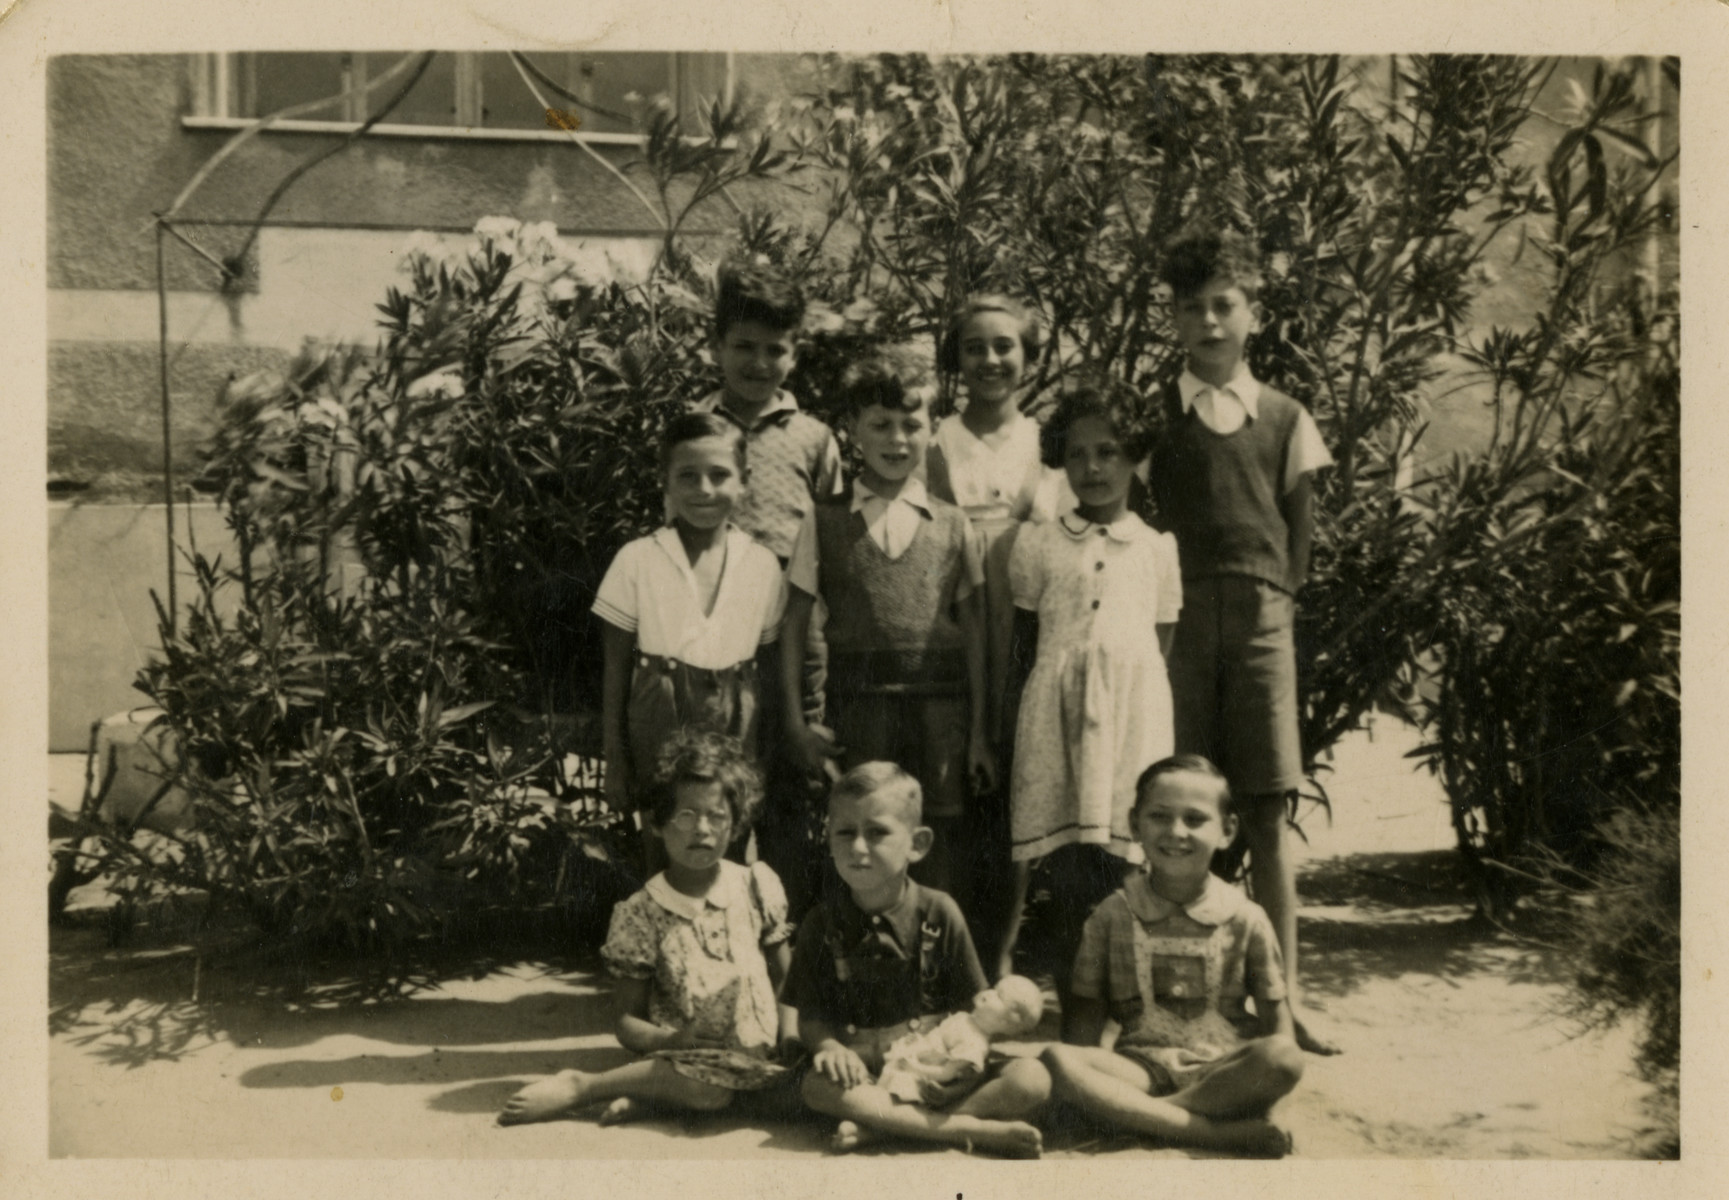 Group portrait of Jewish and Spanish children  in the Villla Saint Christophe in Canet-Plage.  Berthe and Claire Landesmann are seated on the far left and standing in the second row on the right.  Jacques Landesmann is standing in the third row on the left.  Ginette Druker is standing third row, center and Jacques Klotein is third row, far right.